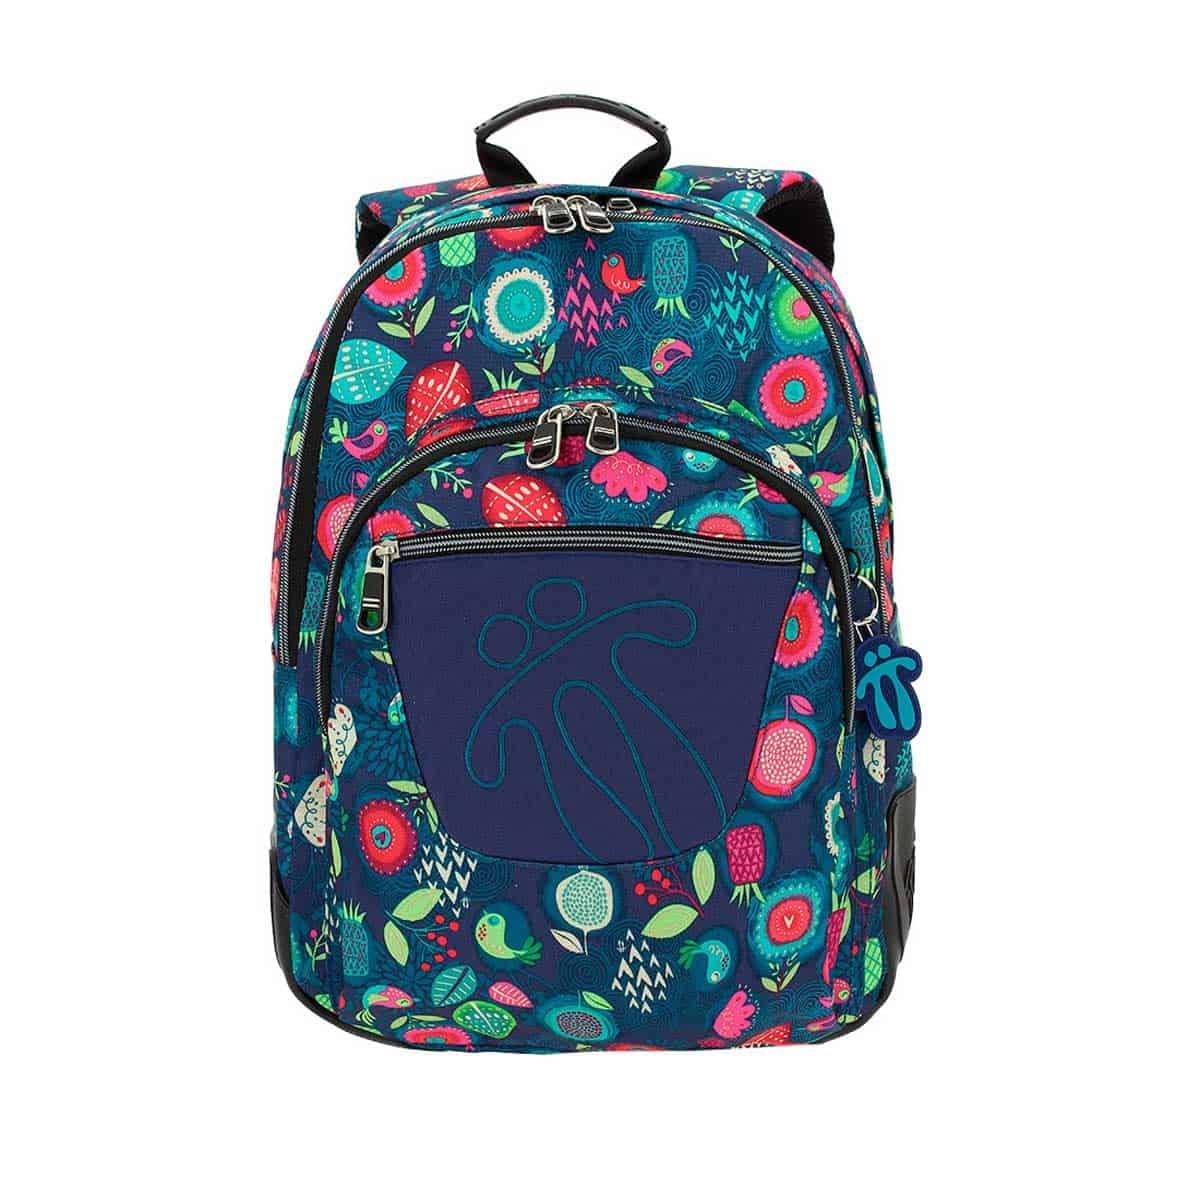 Totto Backpack Crayola